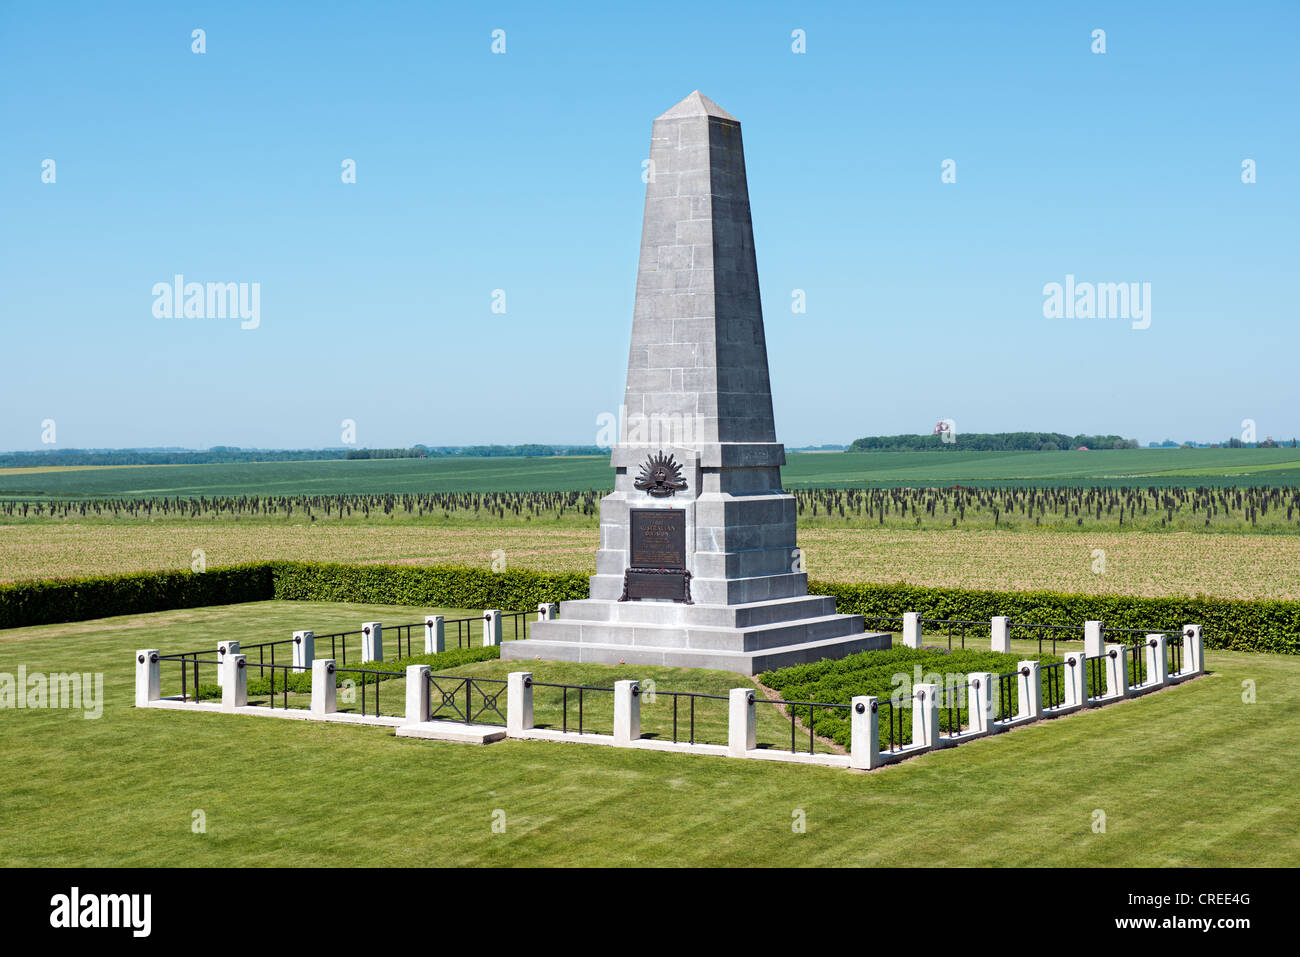 The WW1 Australian 1st Division Memorial with the Thiepval memorial in the distance, Pozières, Somme, France - Stock Image